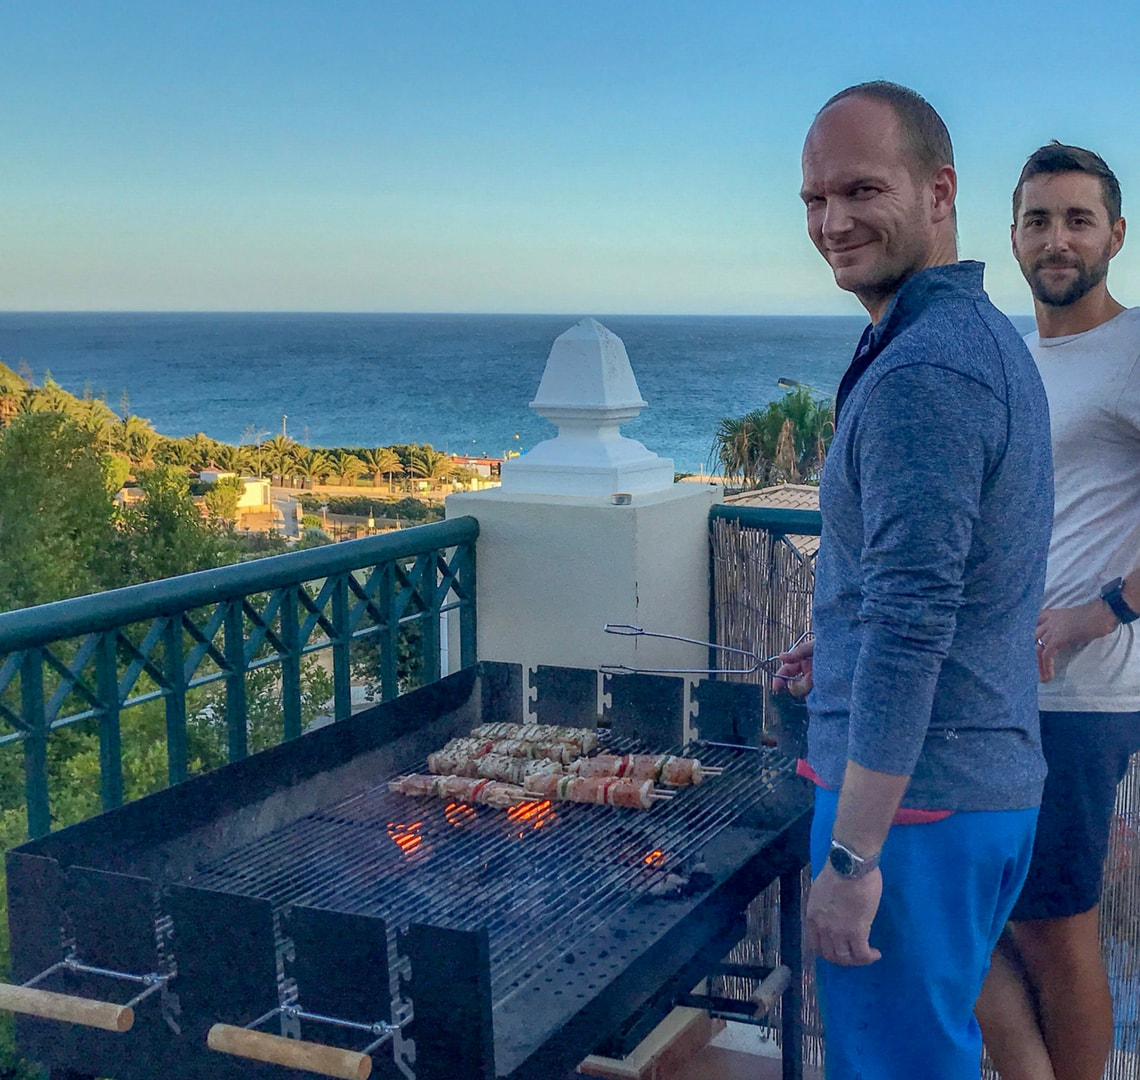 Super fun things to do in Lagos - Mr and Uncle Wanderlust on the BBQ with a stunning evening sea view in the background